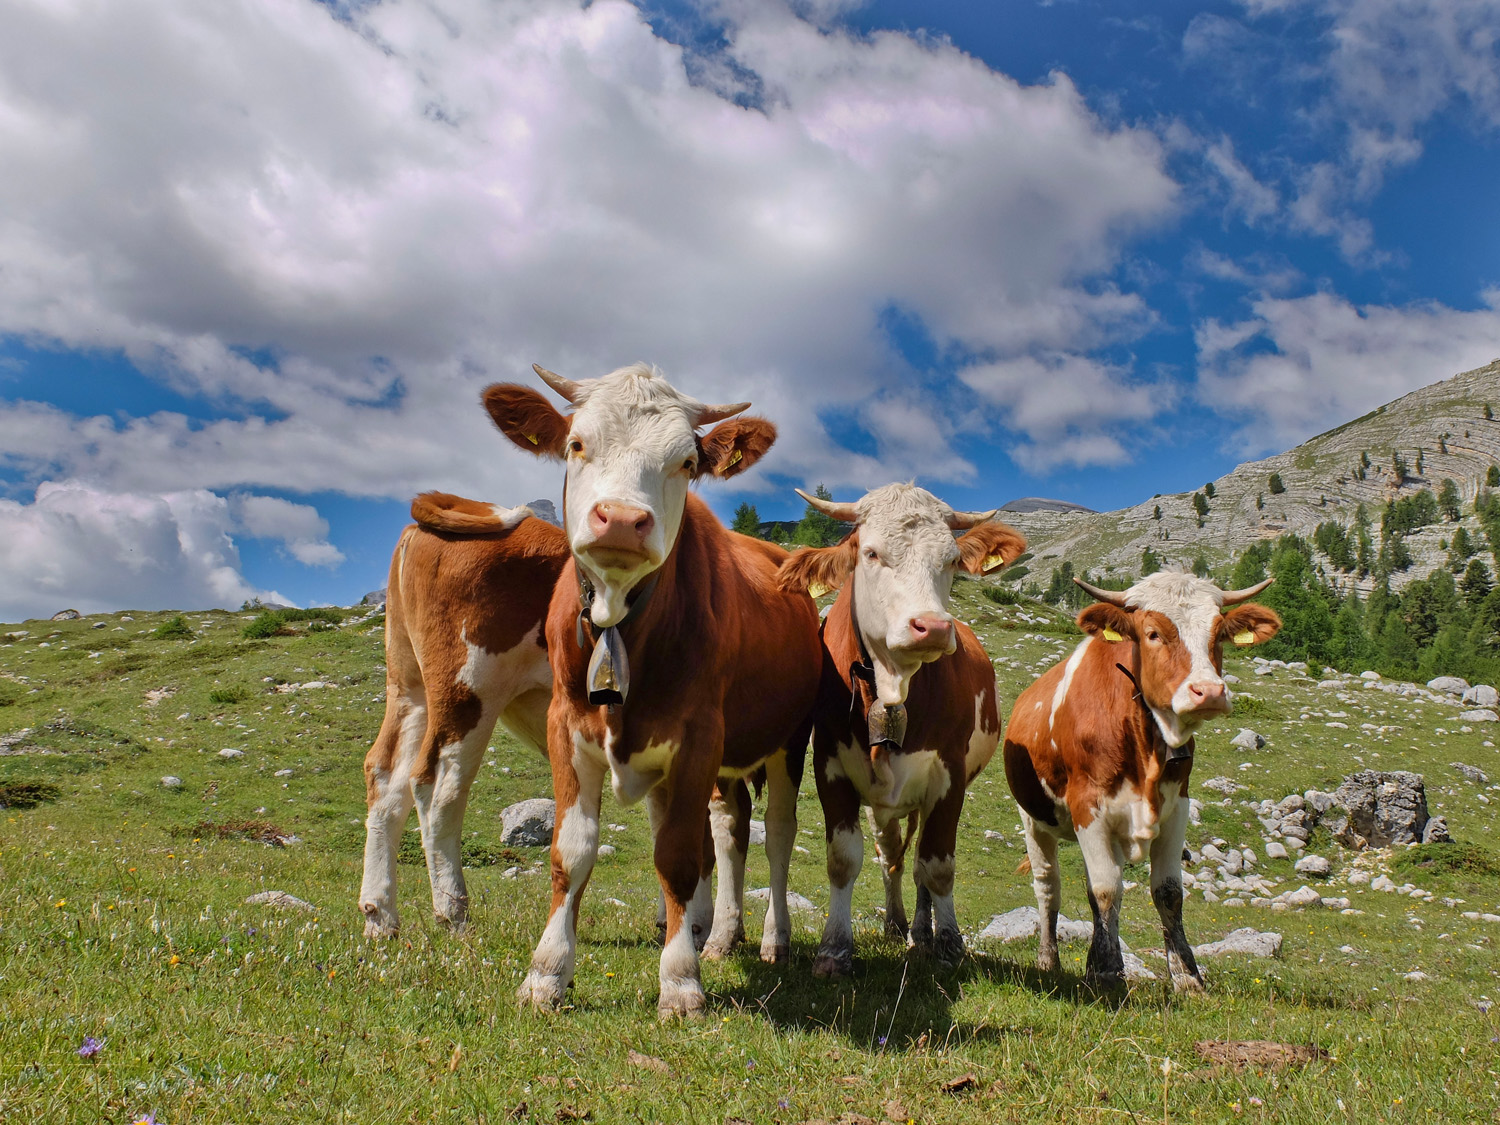 These cows just pose in the mountains and wait for you to come along and photograph them